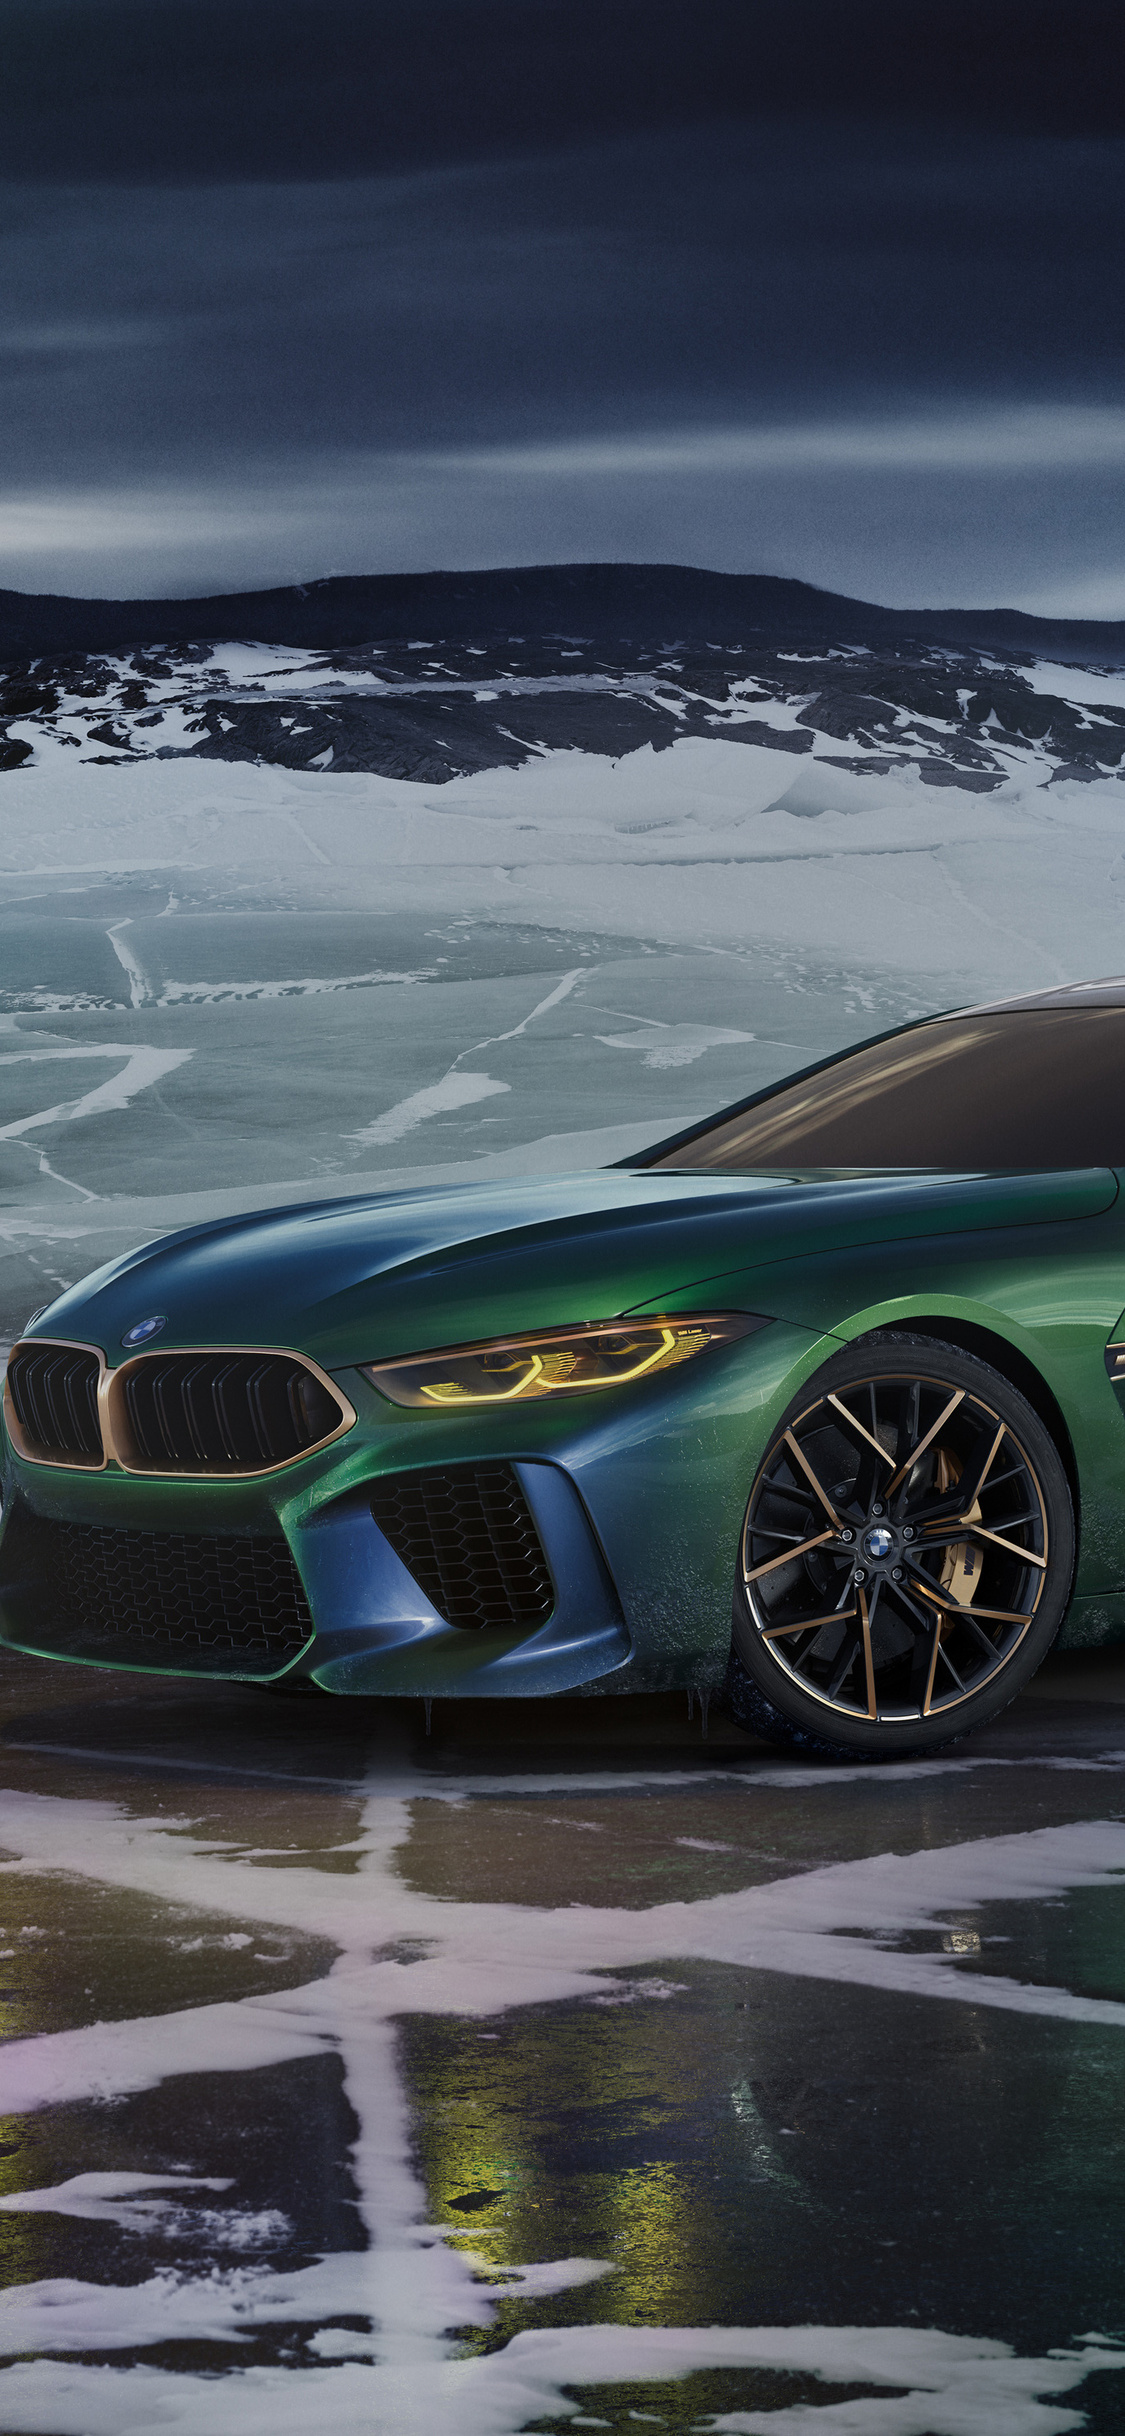 BMW Concept M8 Gran Coupe 2018 (Iphone XS,Iphone 10,Iphone X)